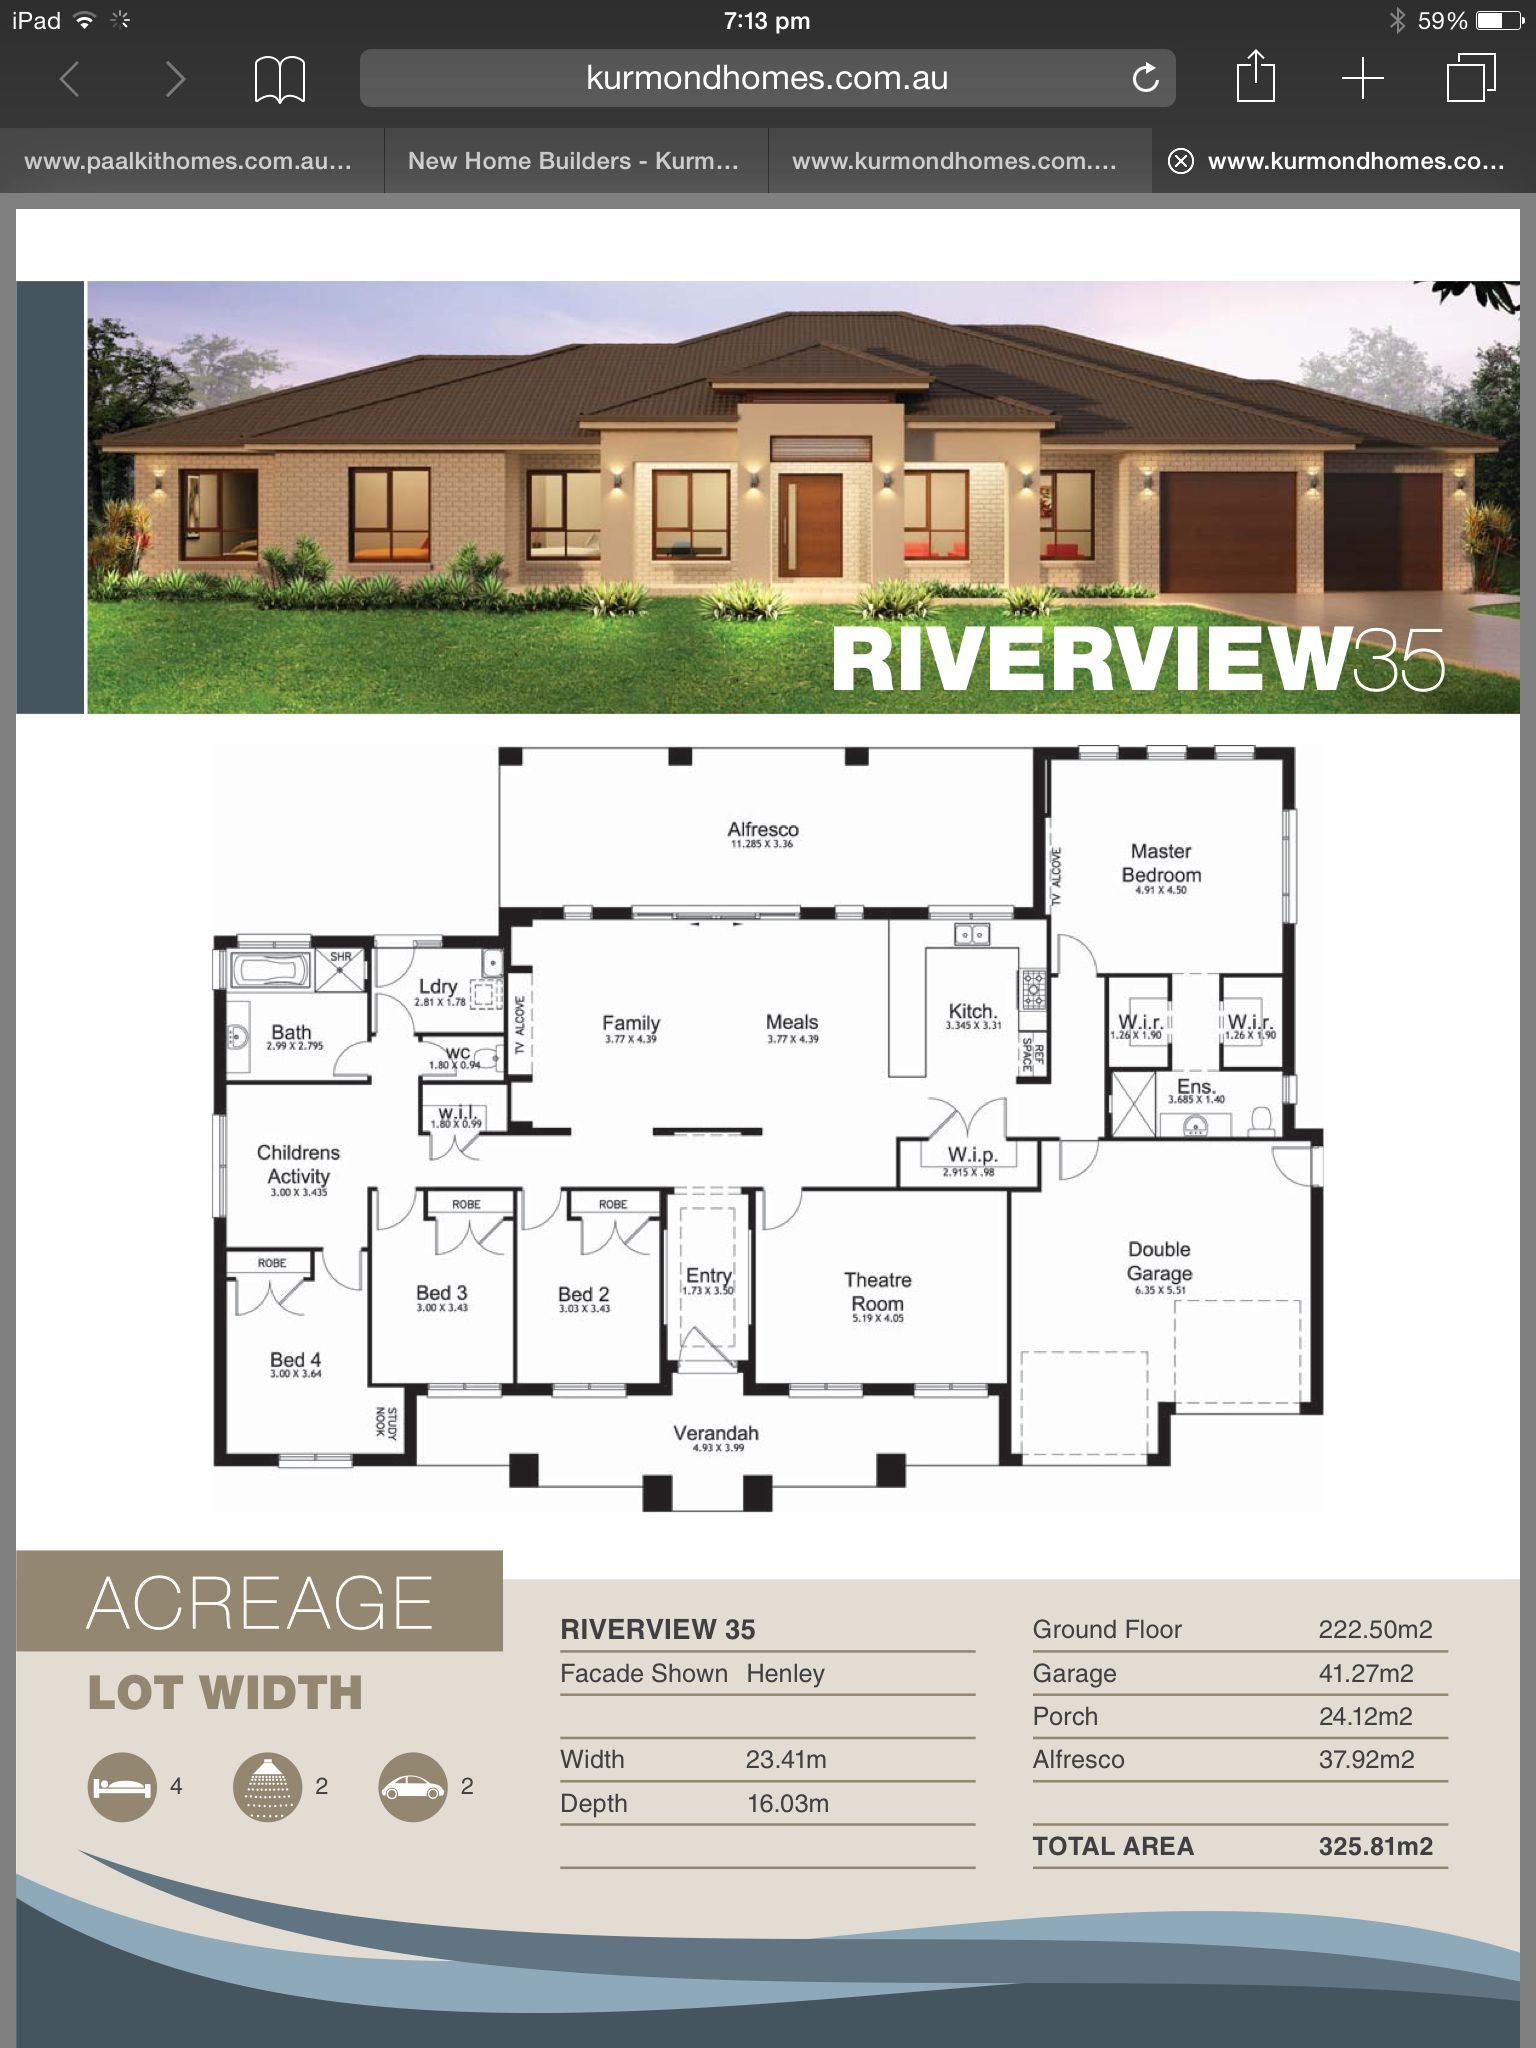 Kurmond Homes Riverview 35 House In 2018 Pinterest House